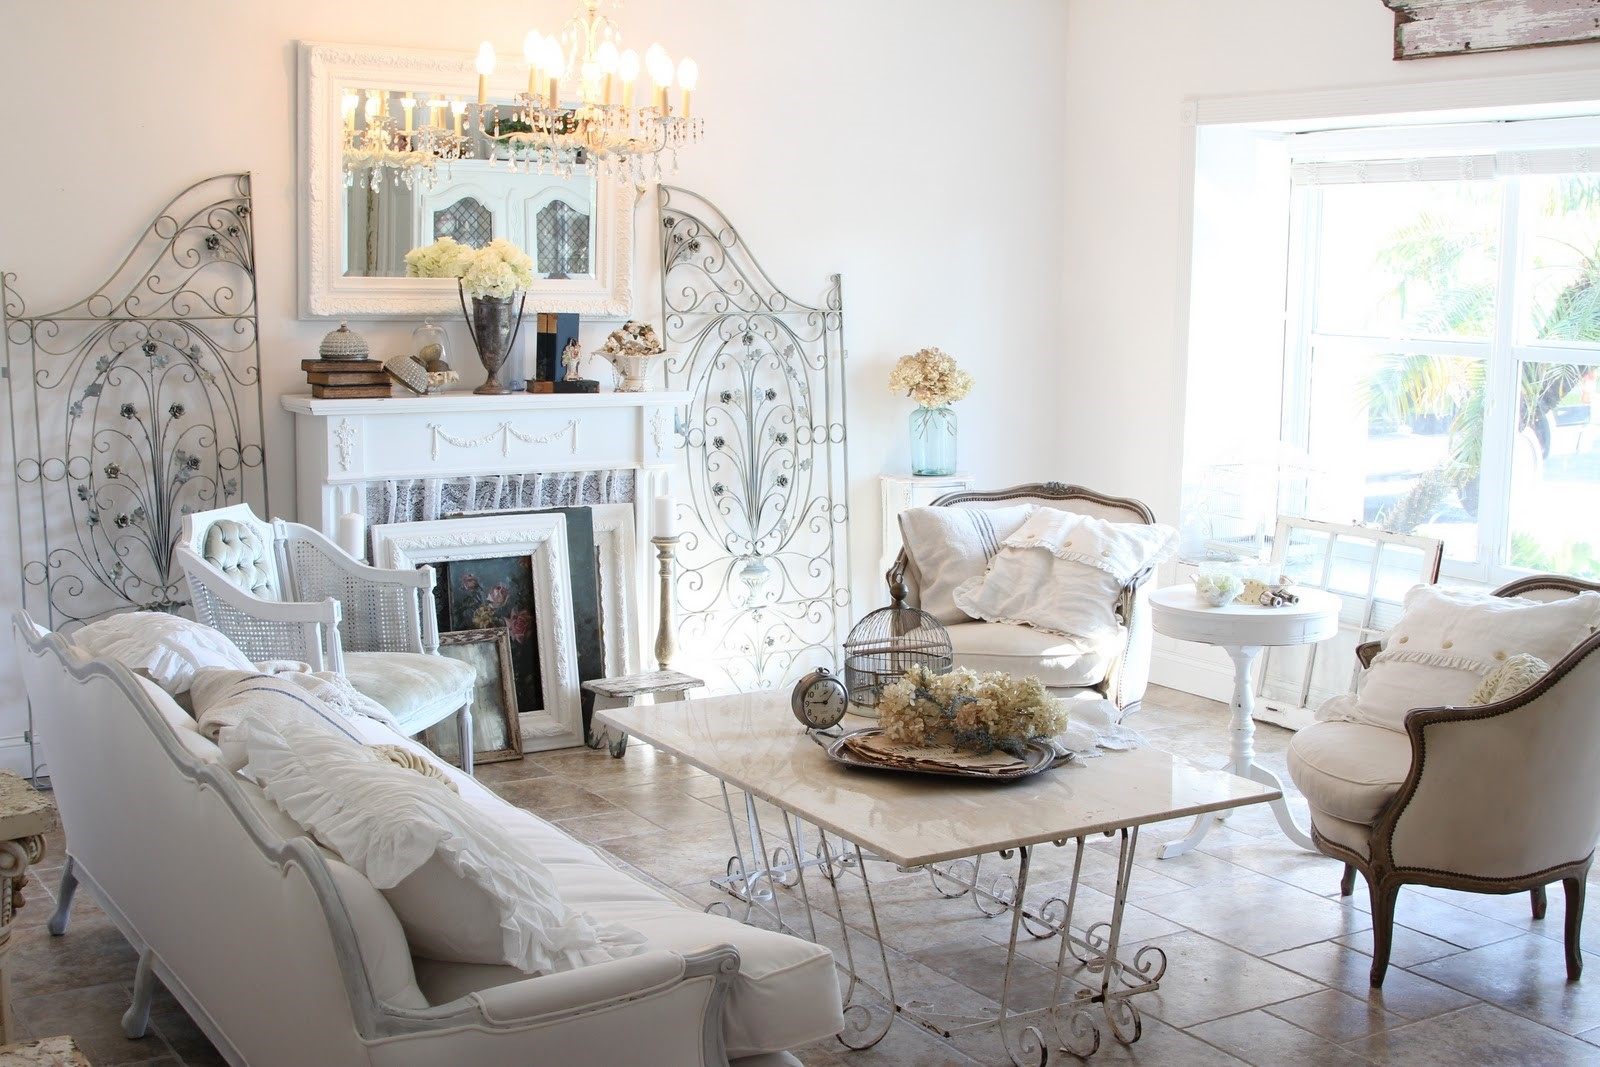 Blogs De Muebles Claves Para Decorar Vintage Con El Estilo Shabby Chic